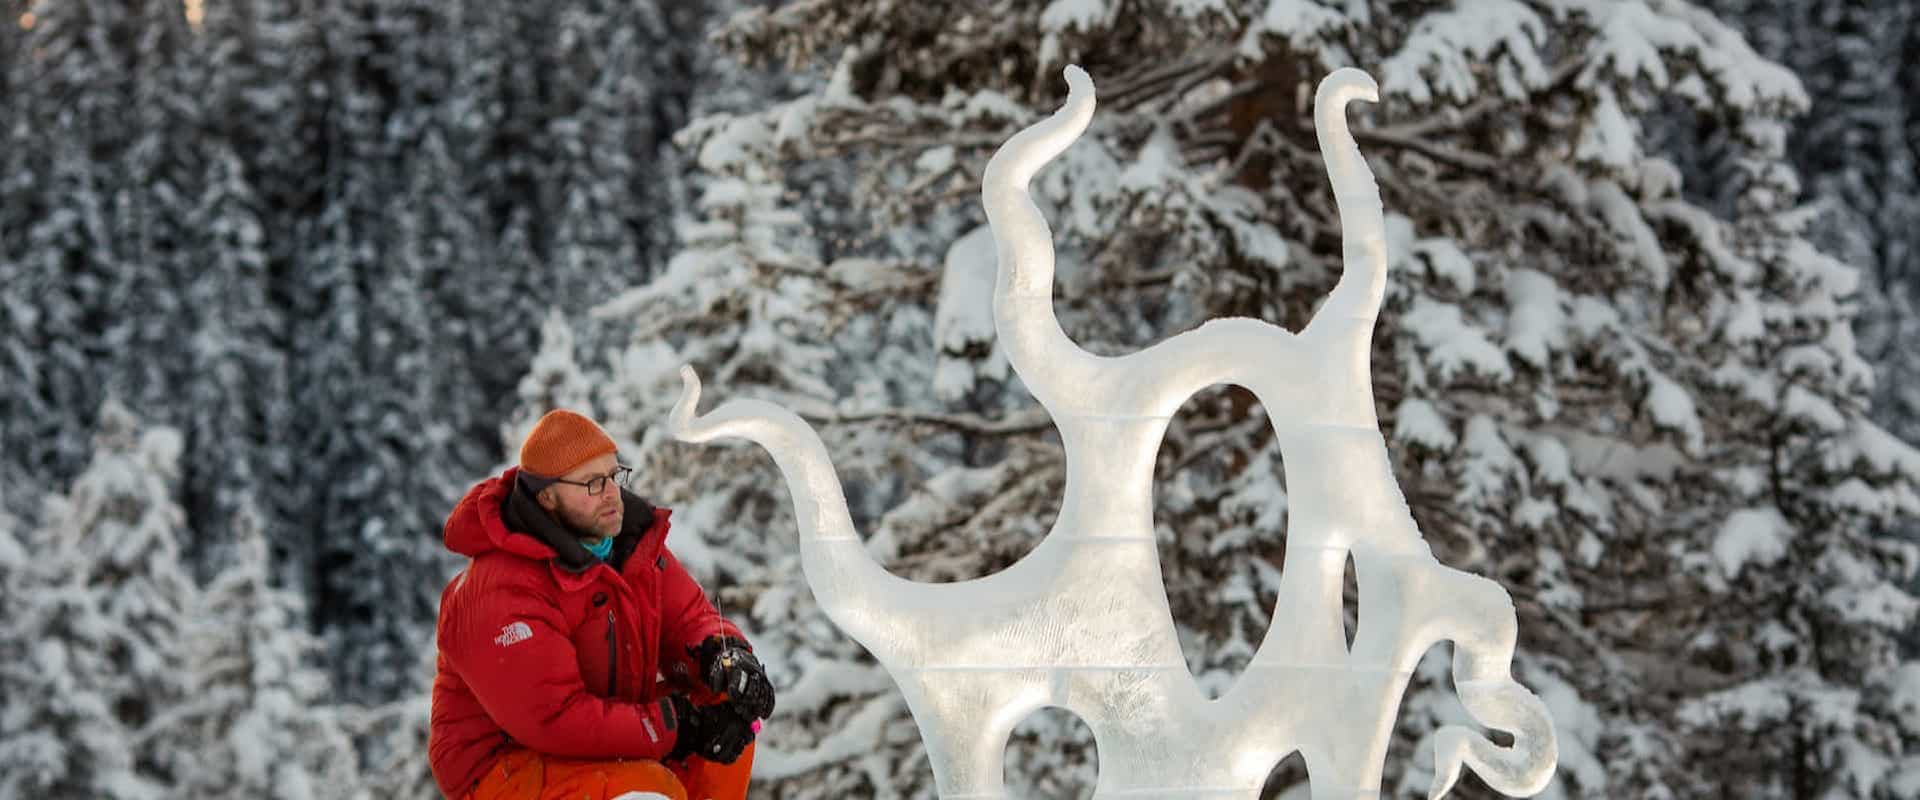 See the Ice Sculptures at Lake Louise during the Ice Magic Festival in January